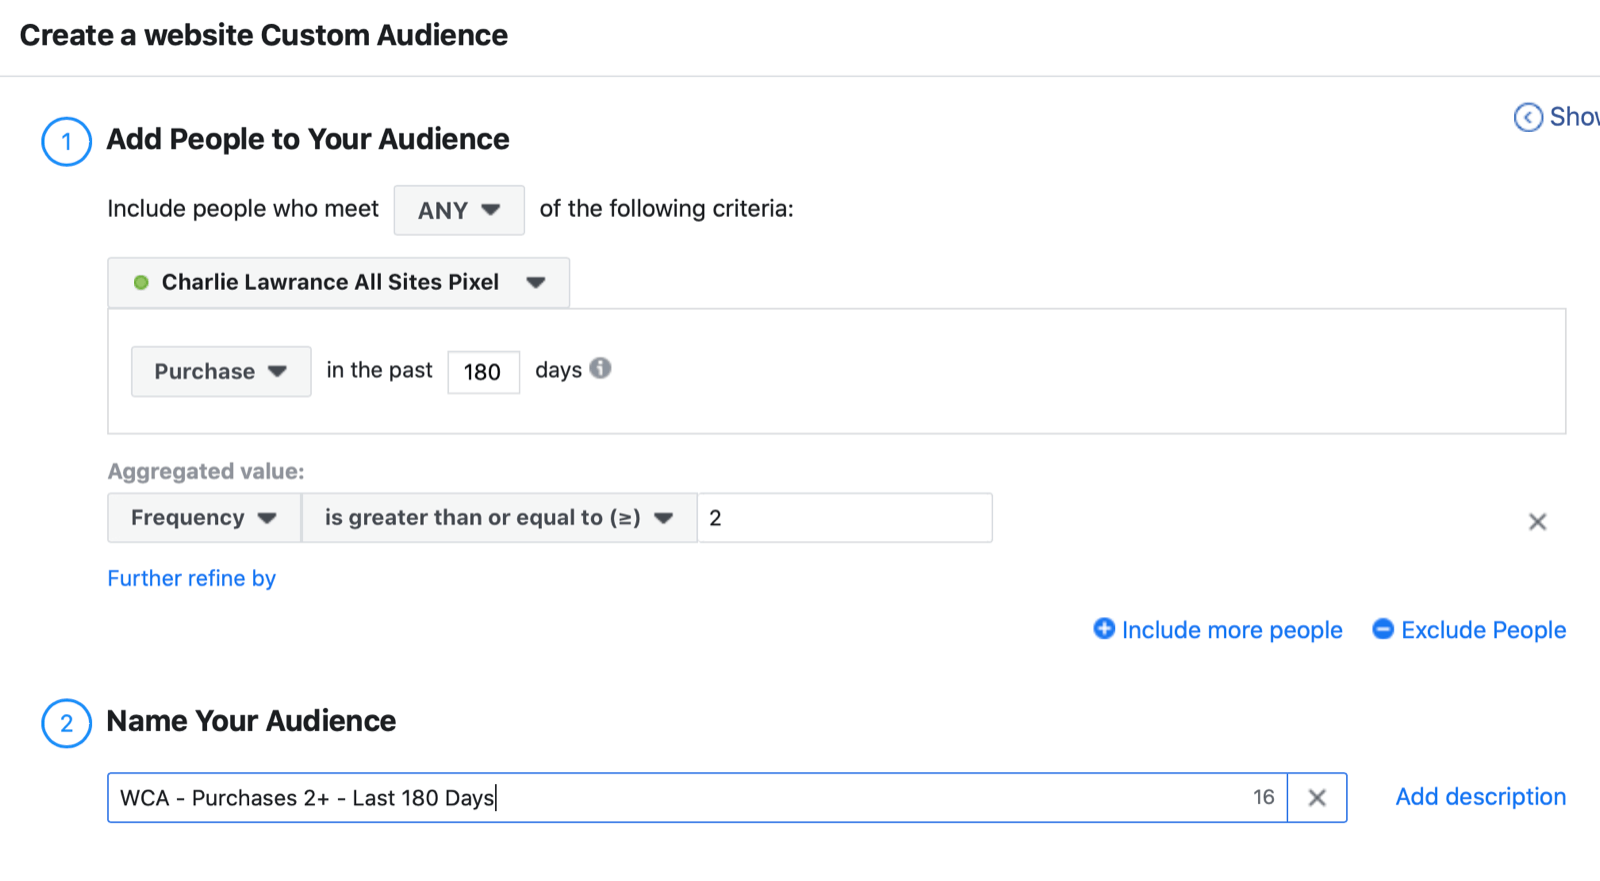 Lookalike Audience Built From People Who Have Purchased at Least Twice